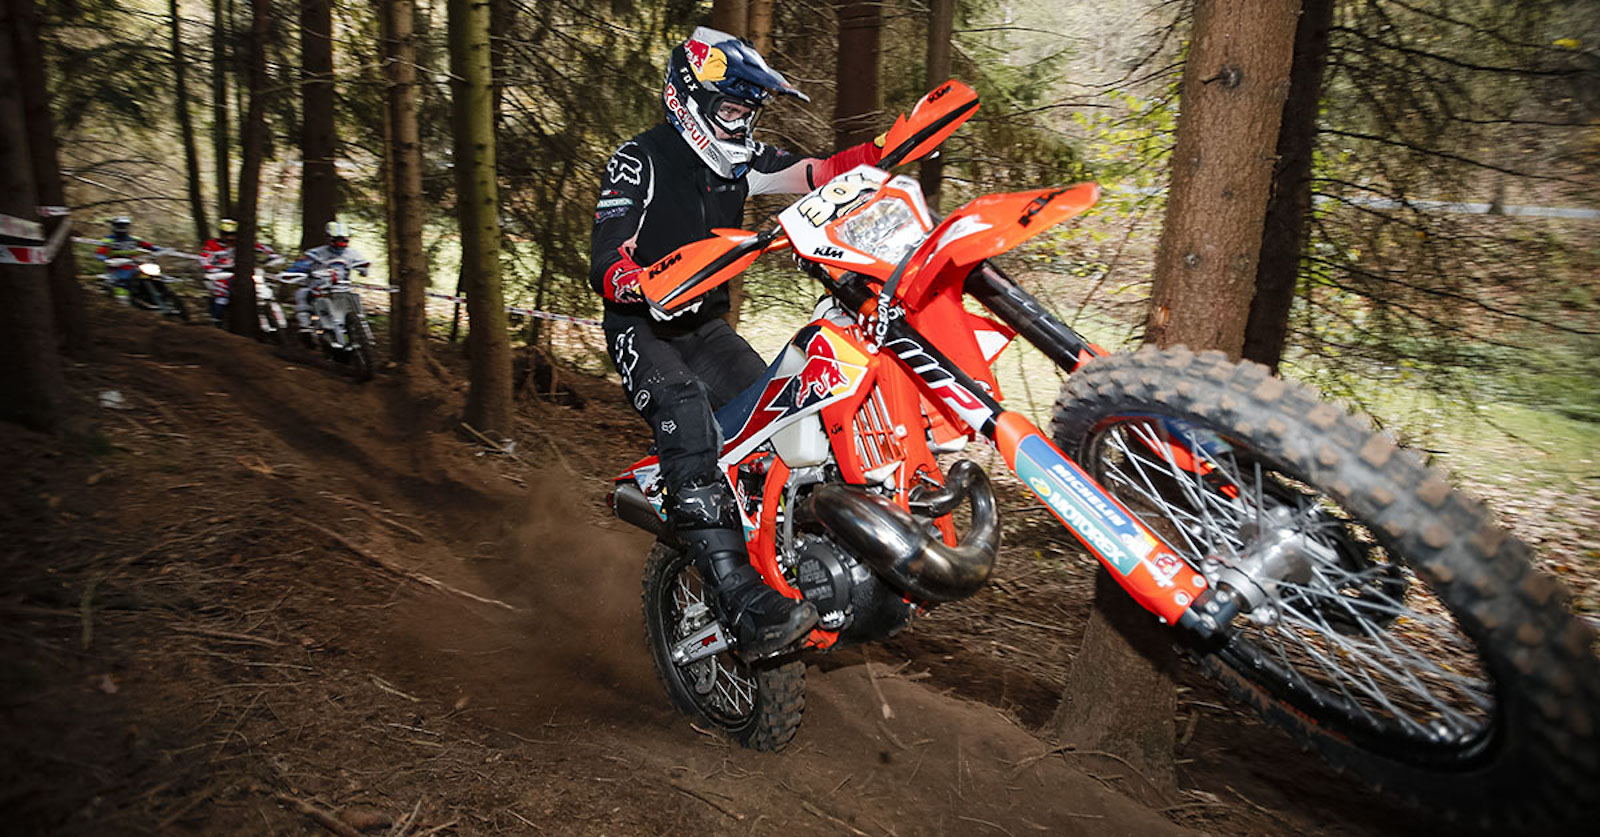 Manuel Lettenbichler crowned 2019 WESS Enduro World Champion